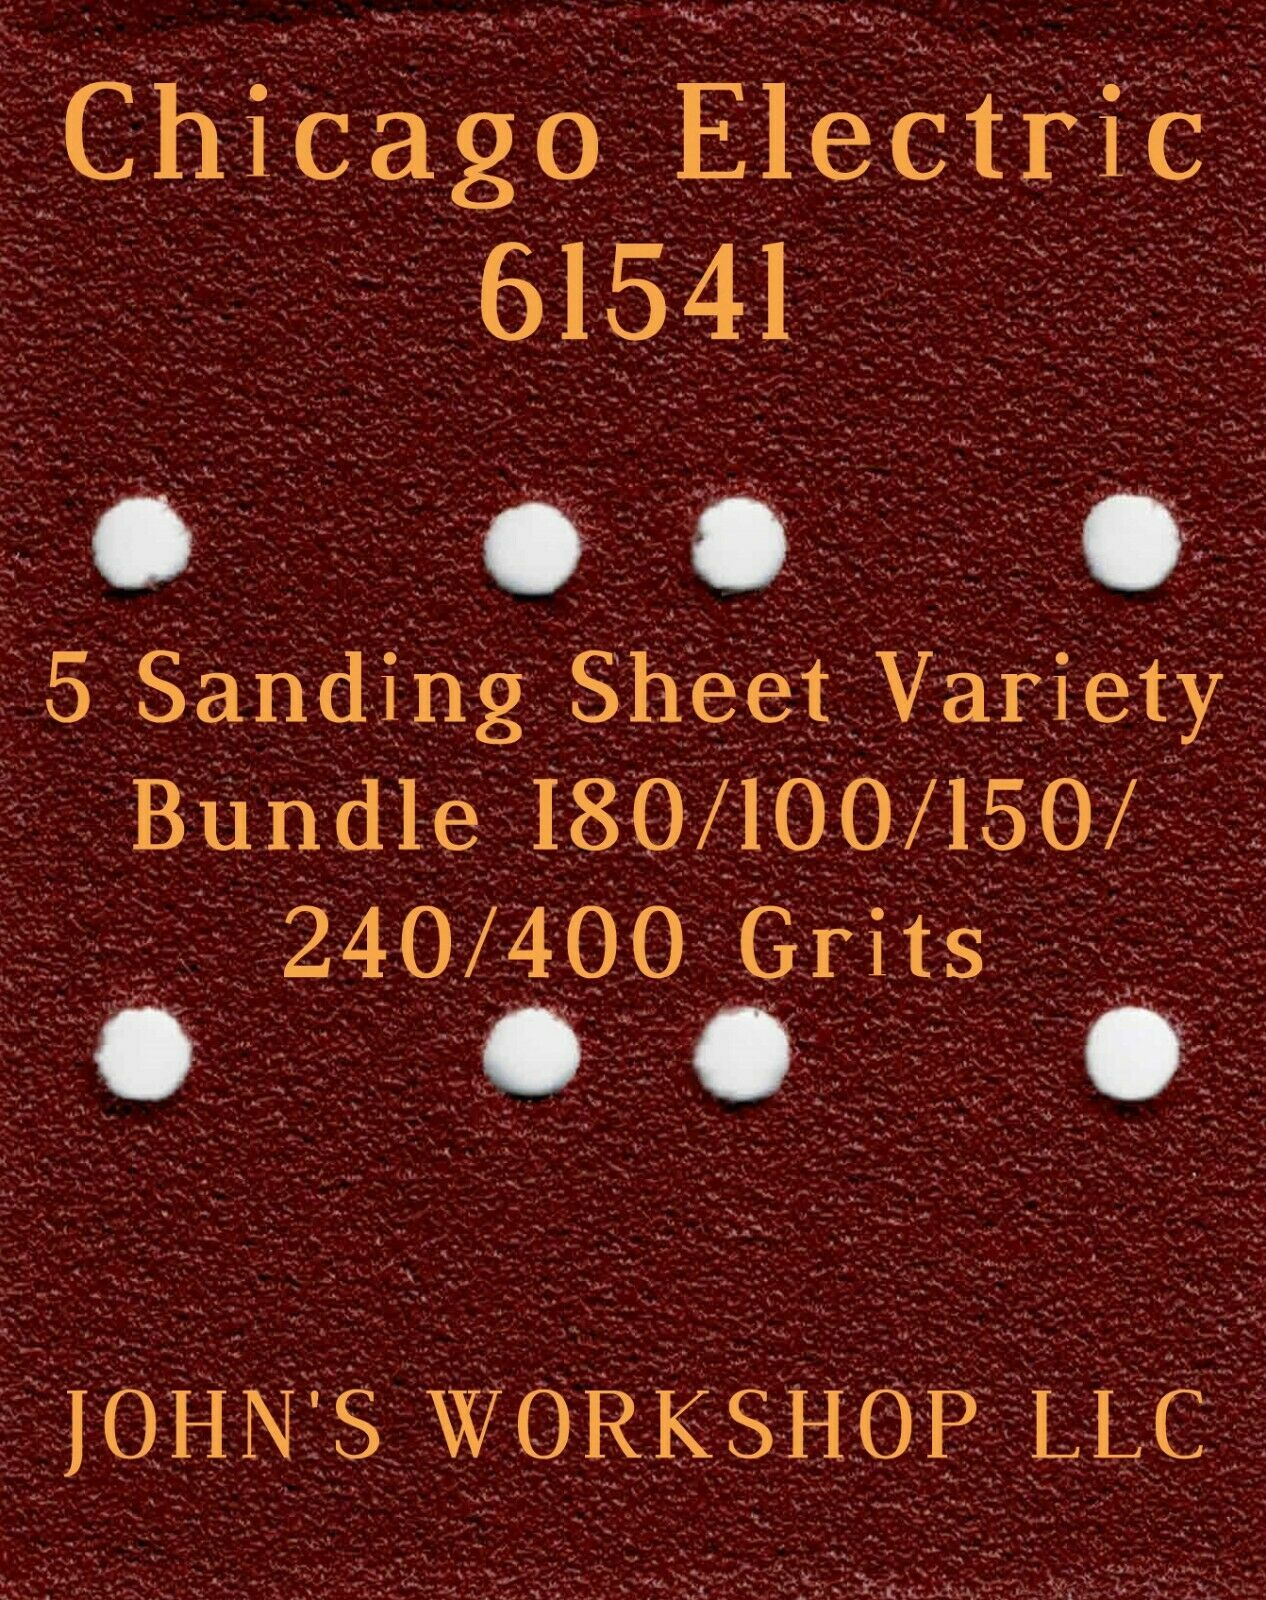 Primary image for Chicago Electric 61541 - 80/100/150/240/400 Grits - 5 Sandpaper Variety Bundle I